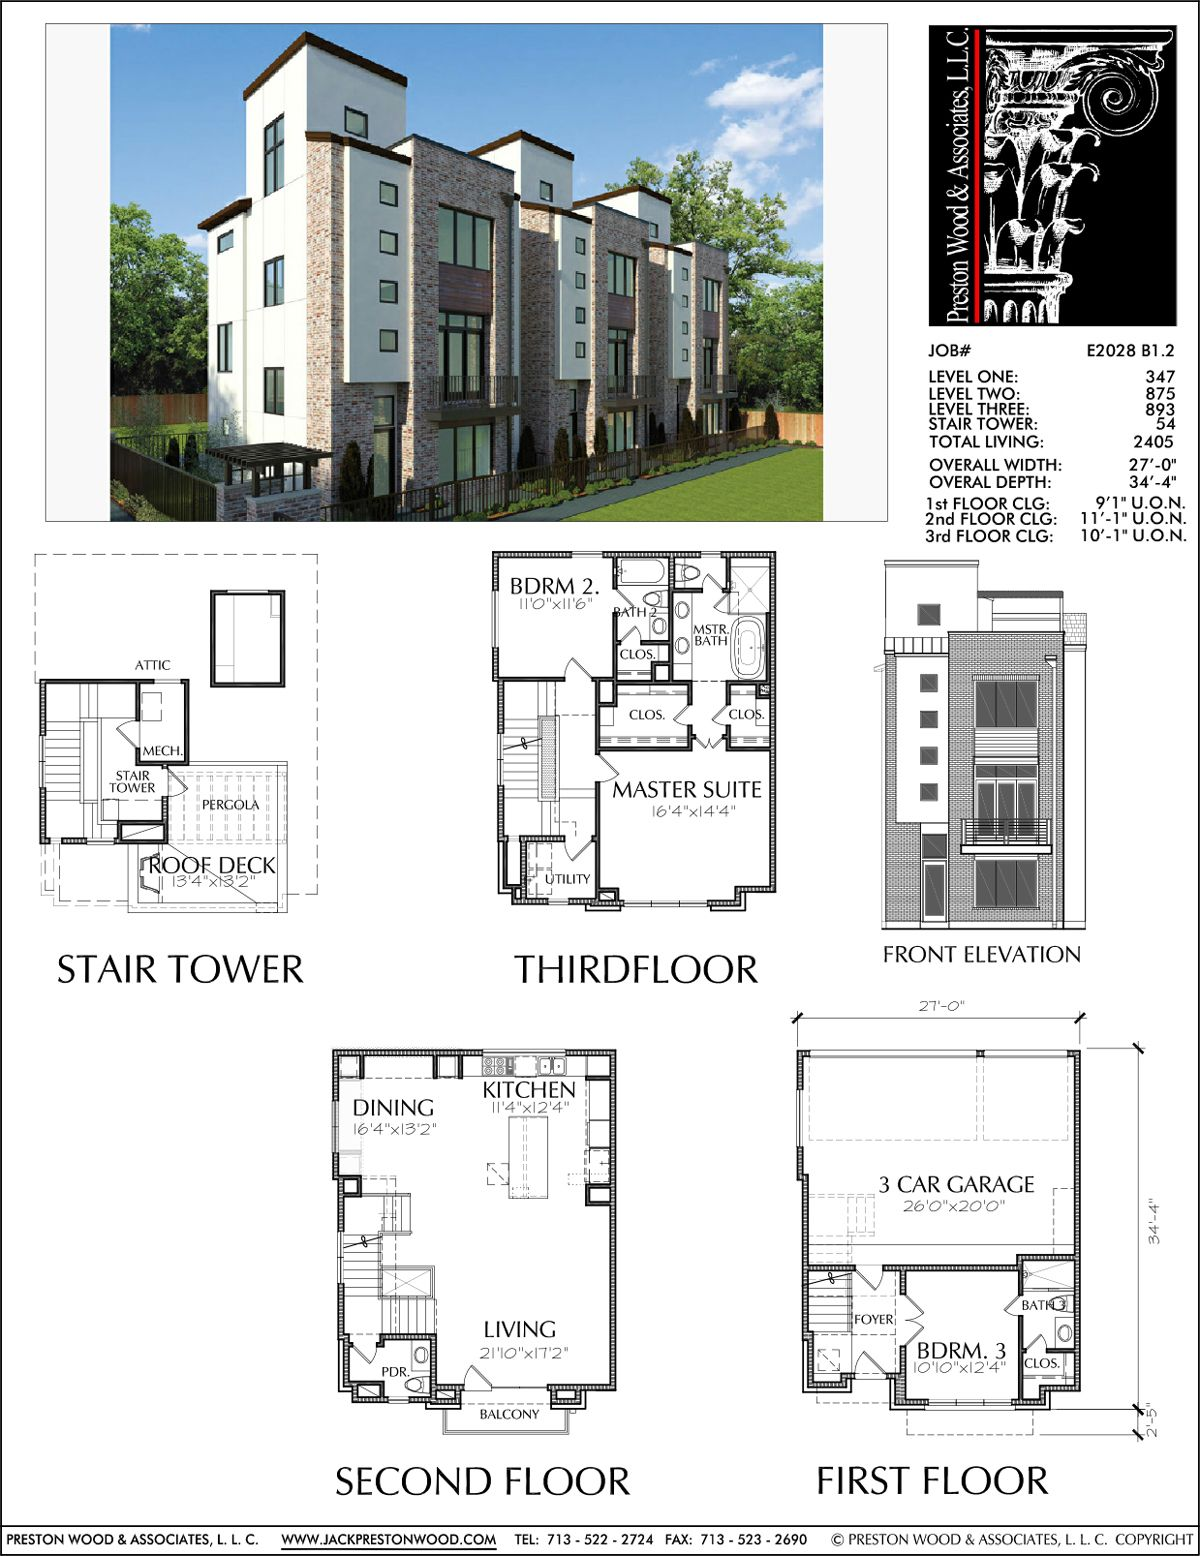 Townhome Plan E2028 B1 2 Townhouse Designs Town House Floor Plan Floor Plans